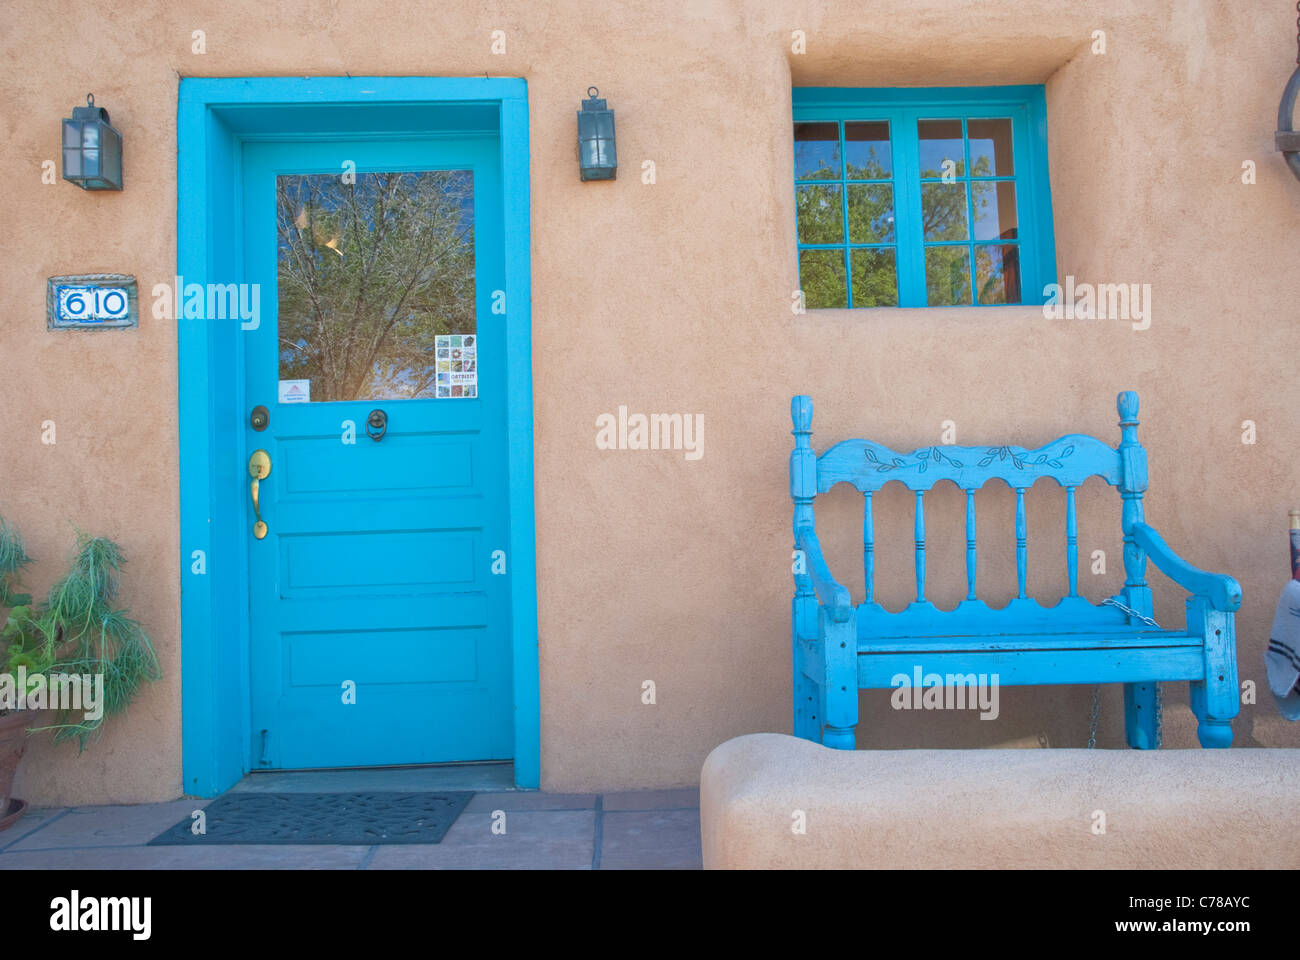 Southwestern Blue Accents Doors Windows And Benches On